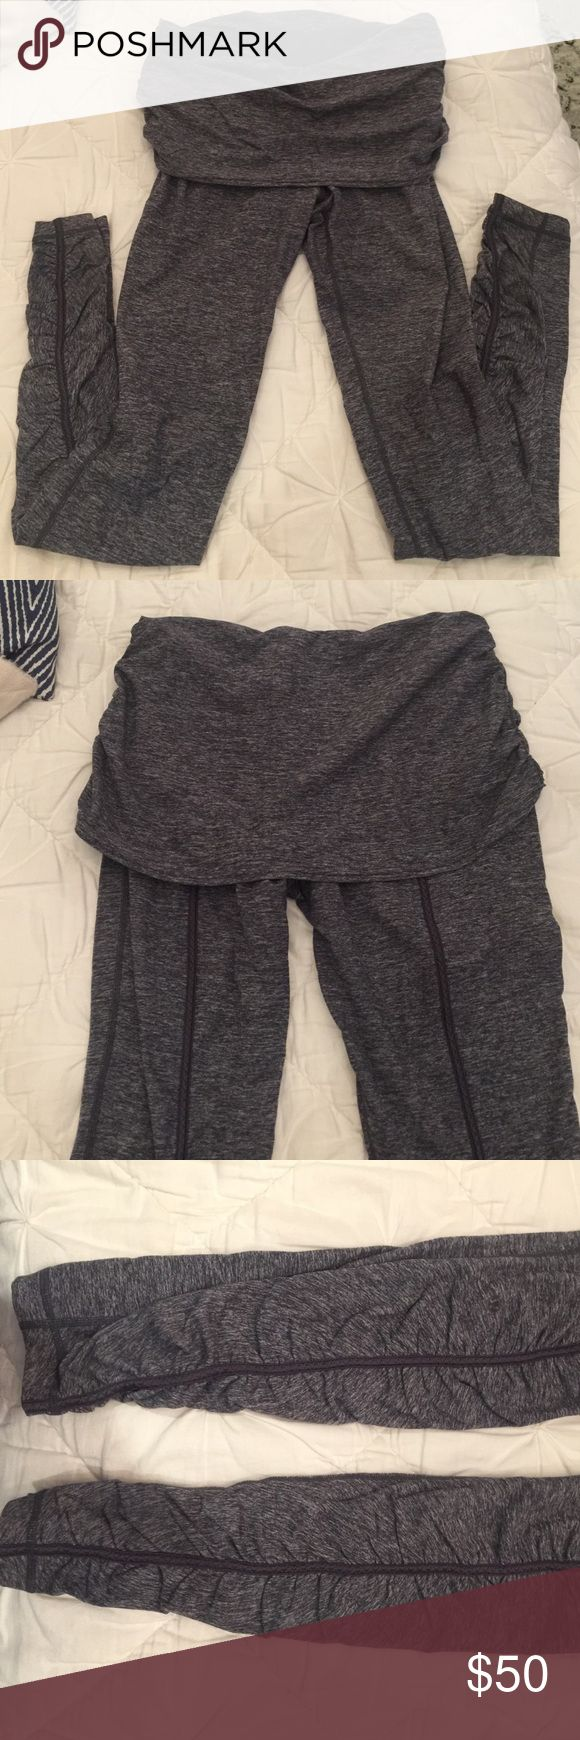 Lululemon ballet tights, size 10 Lululemon tights in dark heathered gray with super cute ruched bottom detail and fold over waistband for a flattering fit and cover the bum. lululemon athletica Pants Leggings